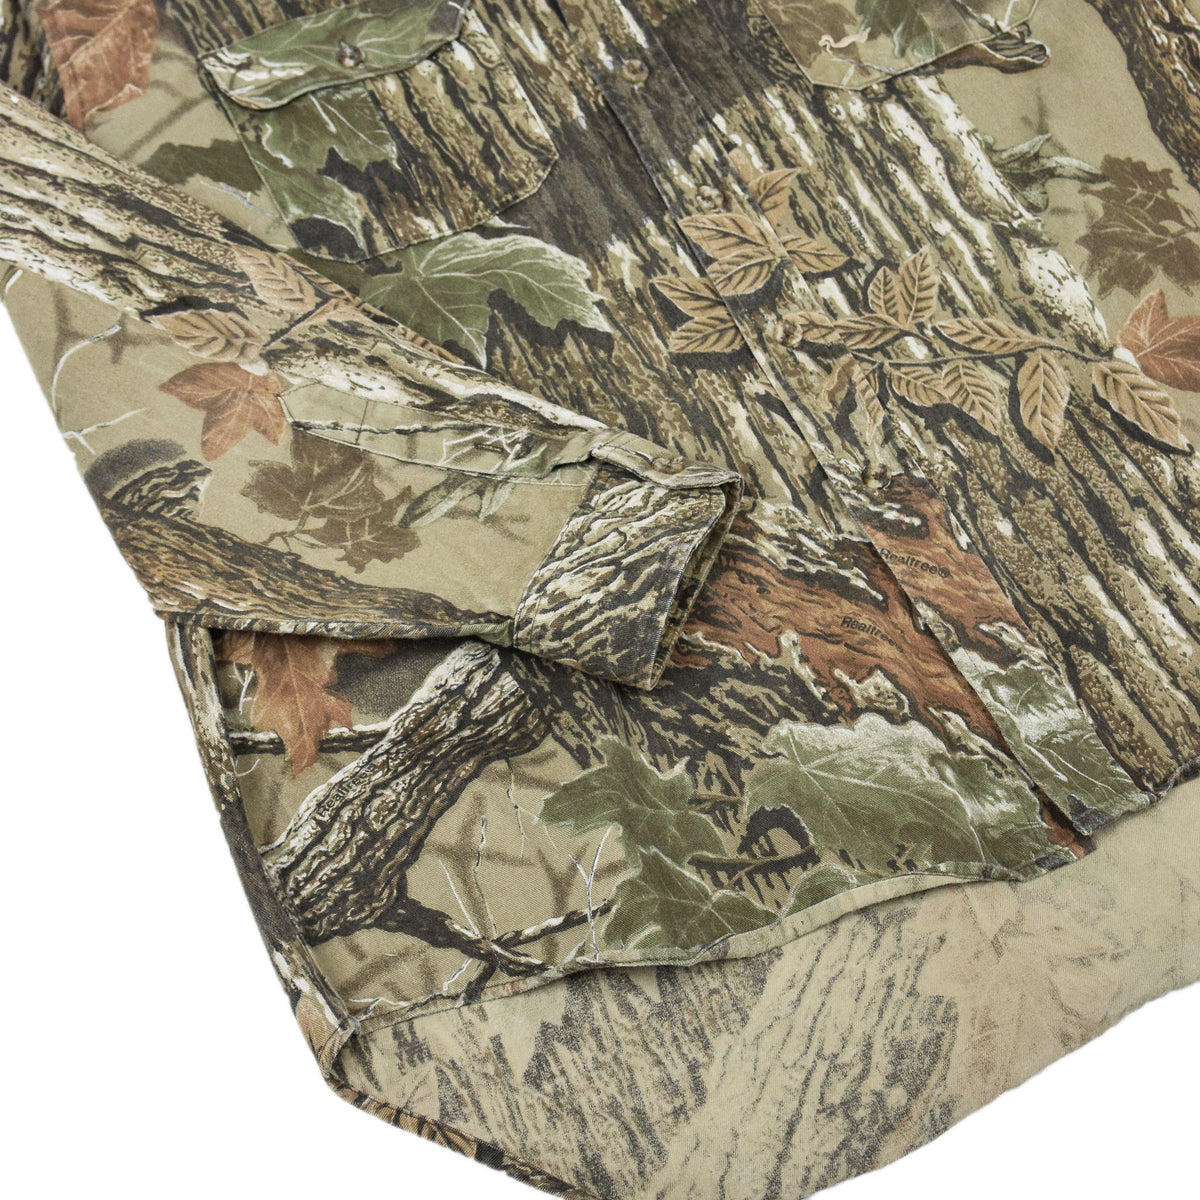 Vintage Duxbak Tree Leaf Camo Hunting Shooting Cotton Long Sleeve Shirt XL cuff